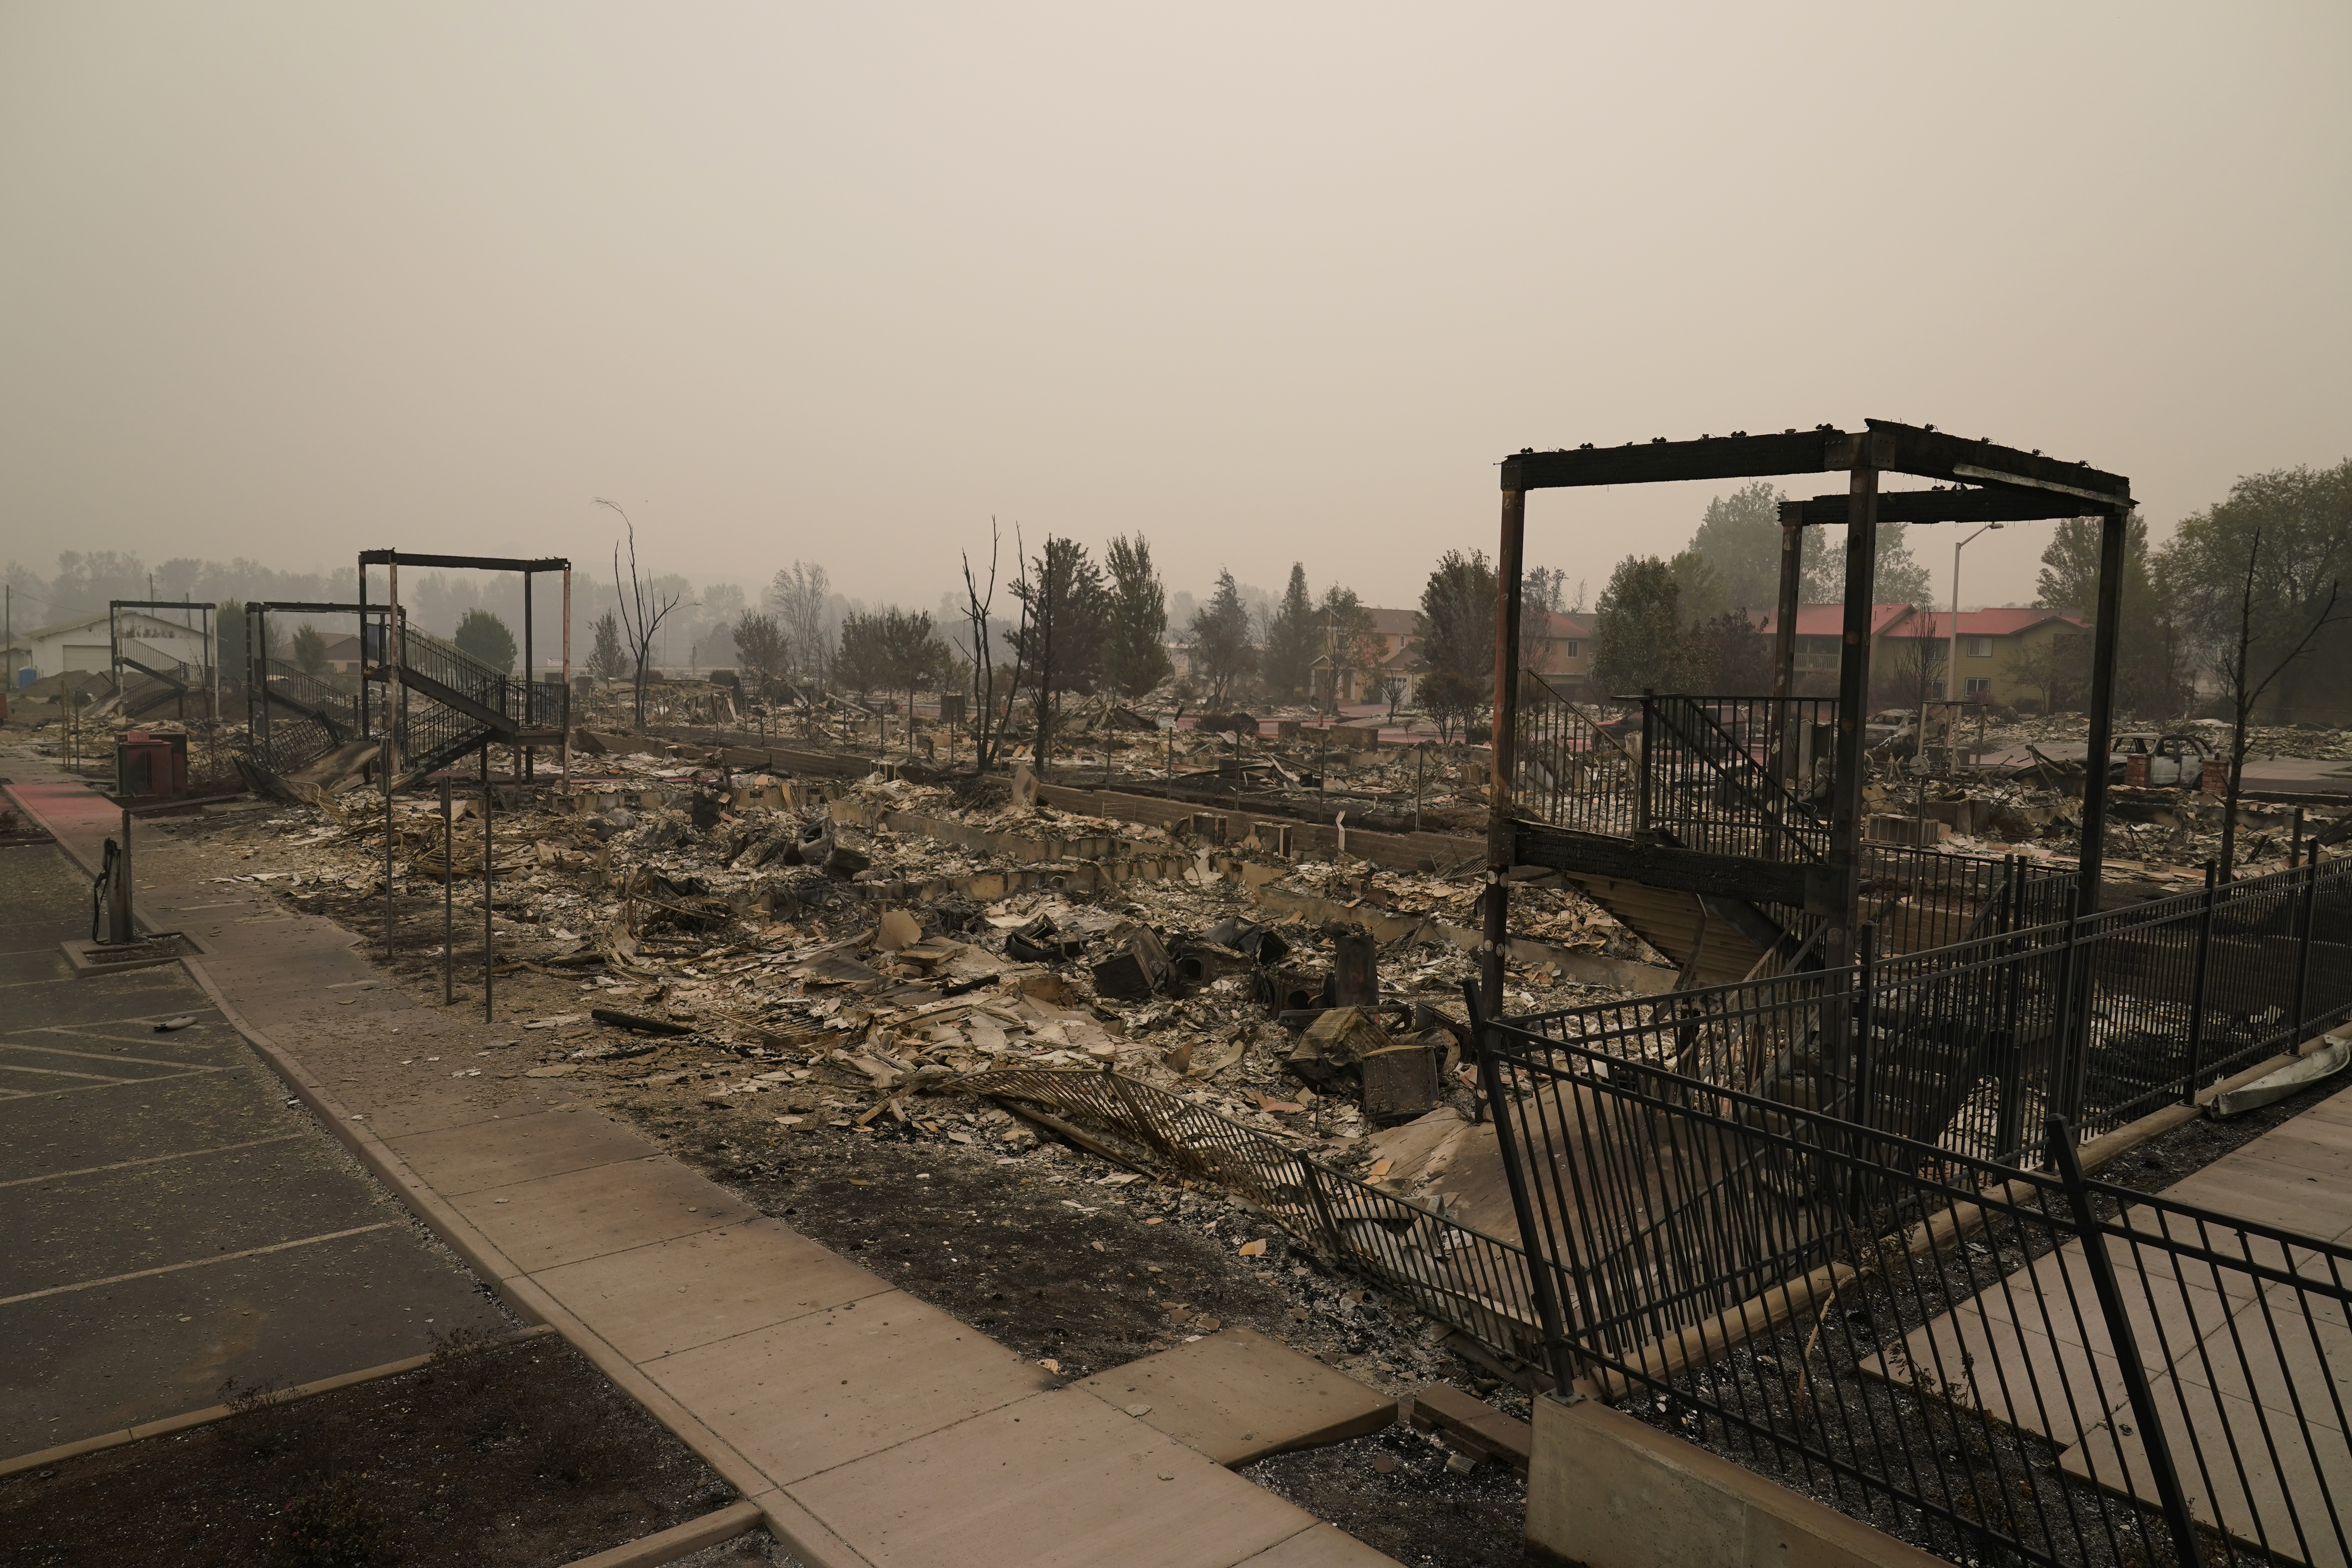 Rubble remains from an area destroyed by the Almeda Fire, Friday, Sept. 11, 2020, in Talent, Ore. (AP Photo/John Locher)